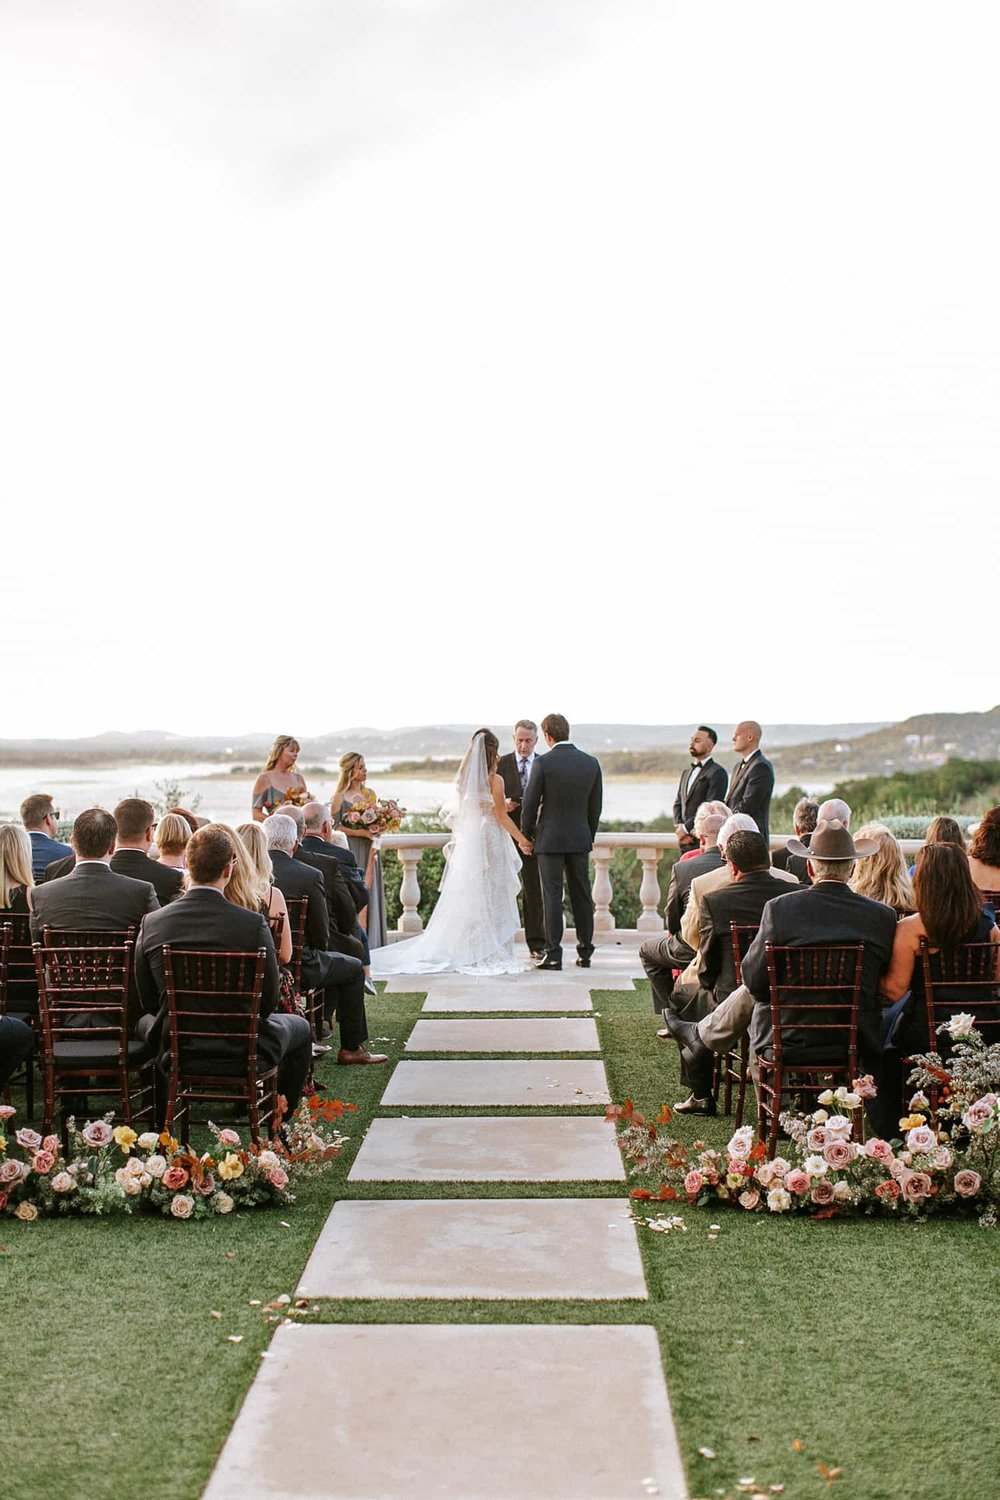 Wedding ceremony flowers by Color Theory Collective